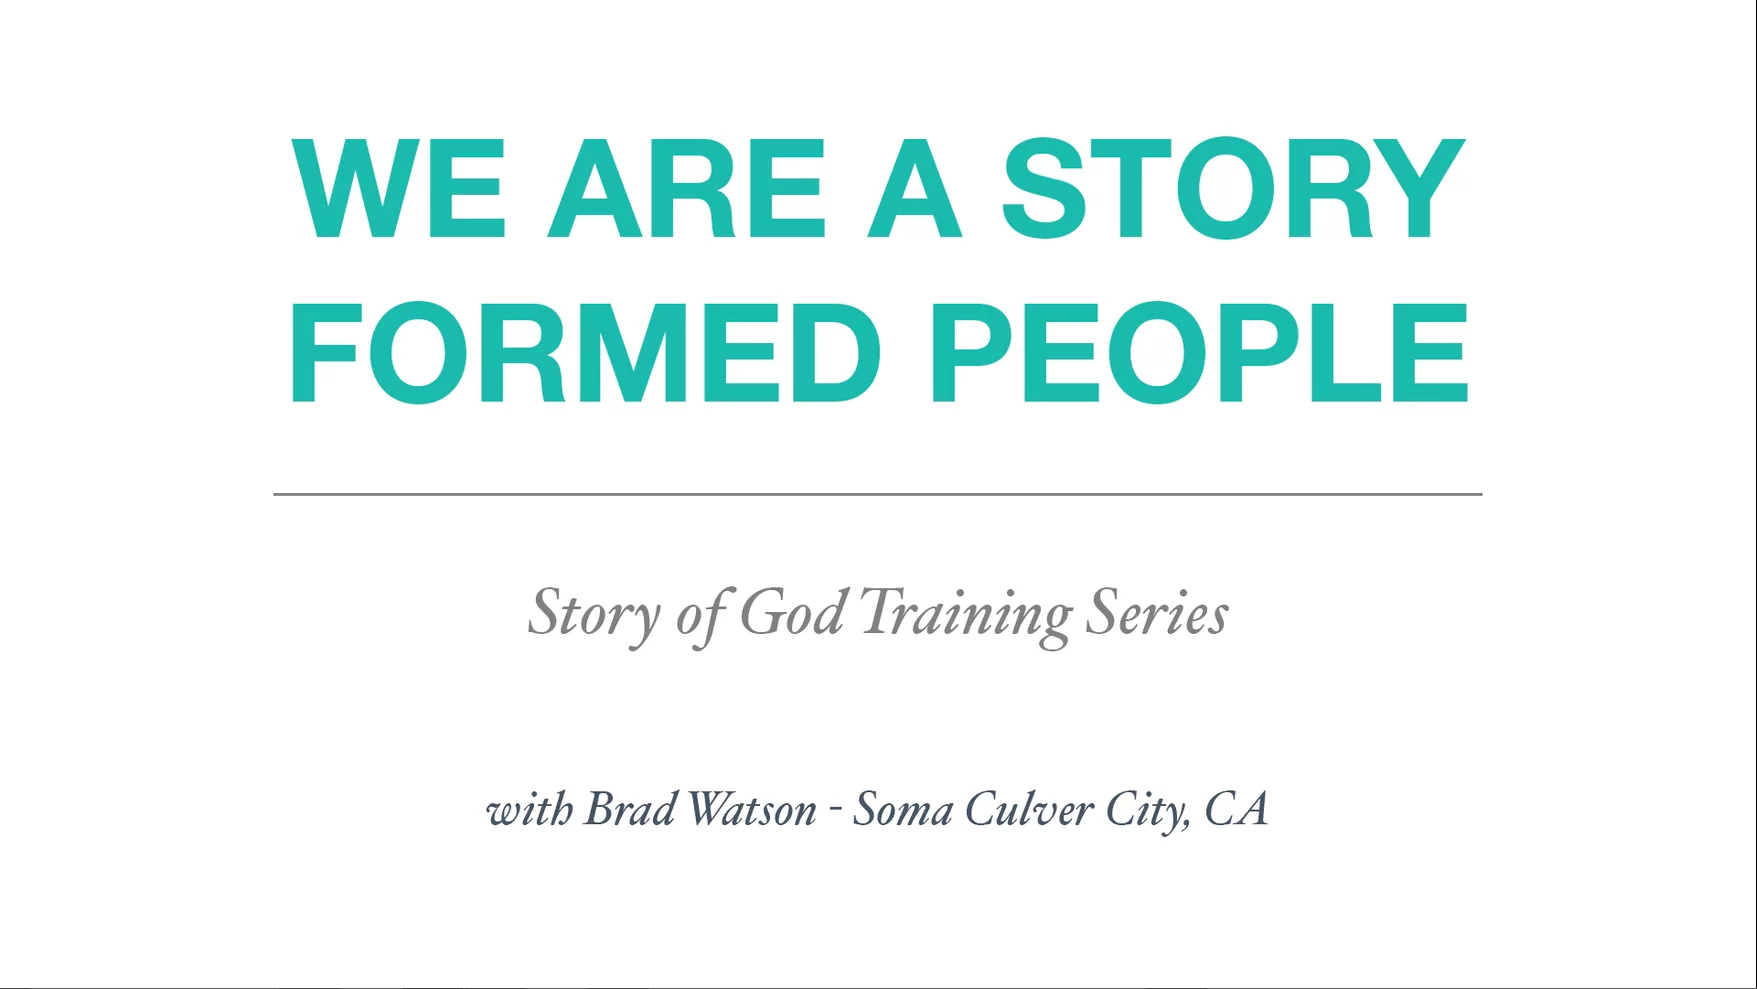 3 - We are a Story formed People